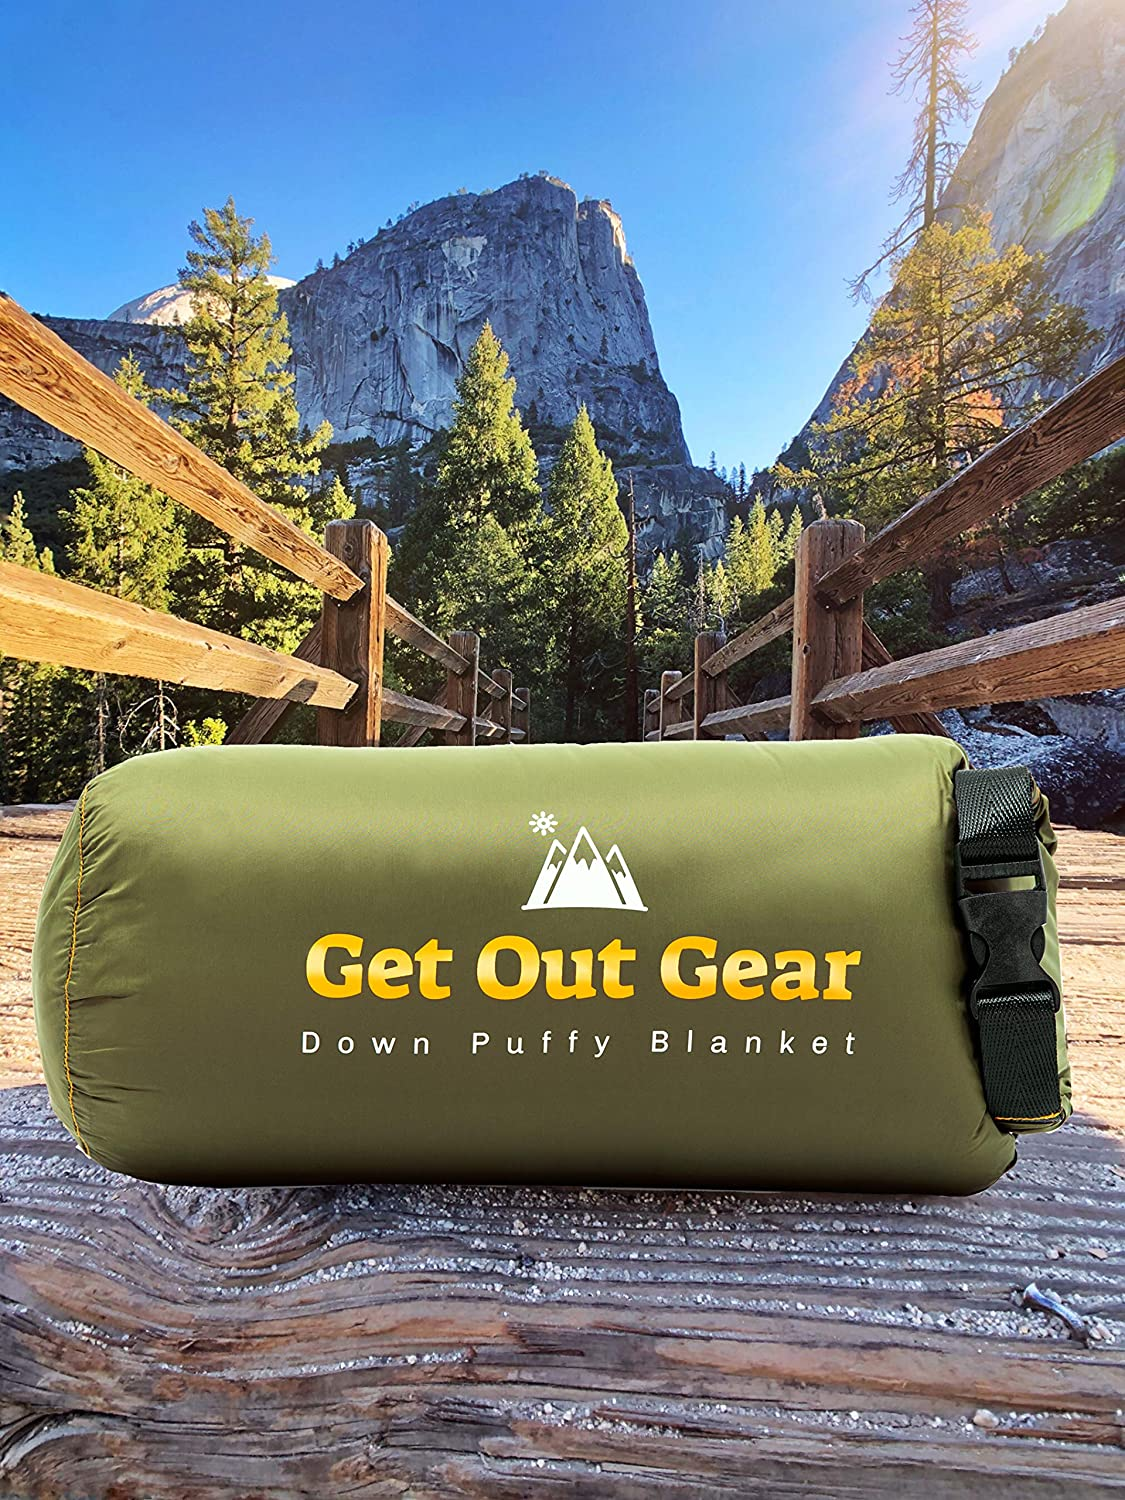 Get Out Gear Down Camping Blanket – Puffy, Packable, Lightweight and Warm Ideal for Outdoors, Travel, Stadium, Festivals, Beach, Hammock 650 Fill Power Water-Resistant Backpacking Quilt